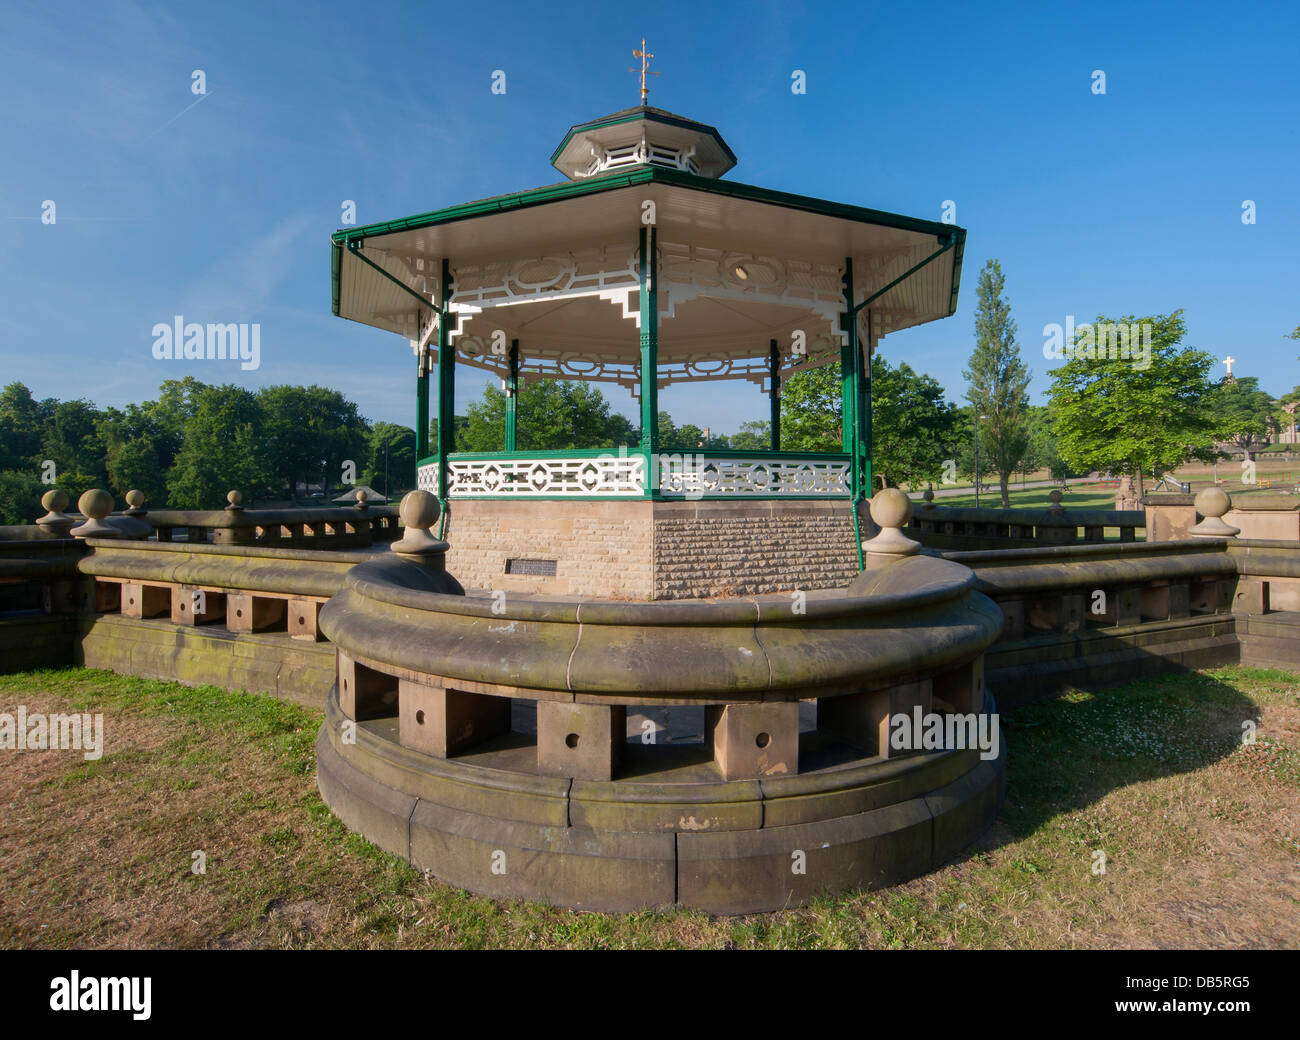 detail of the sandstone curved wall surrounding the bandstand at Greenhead park, Huddersfield - Stock Image